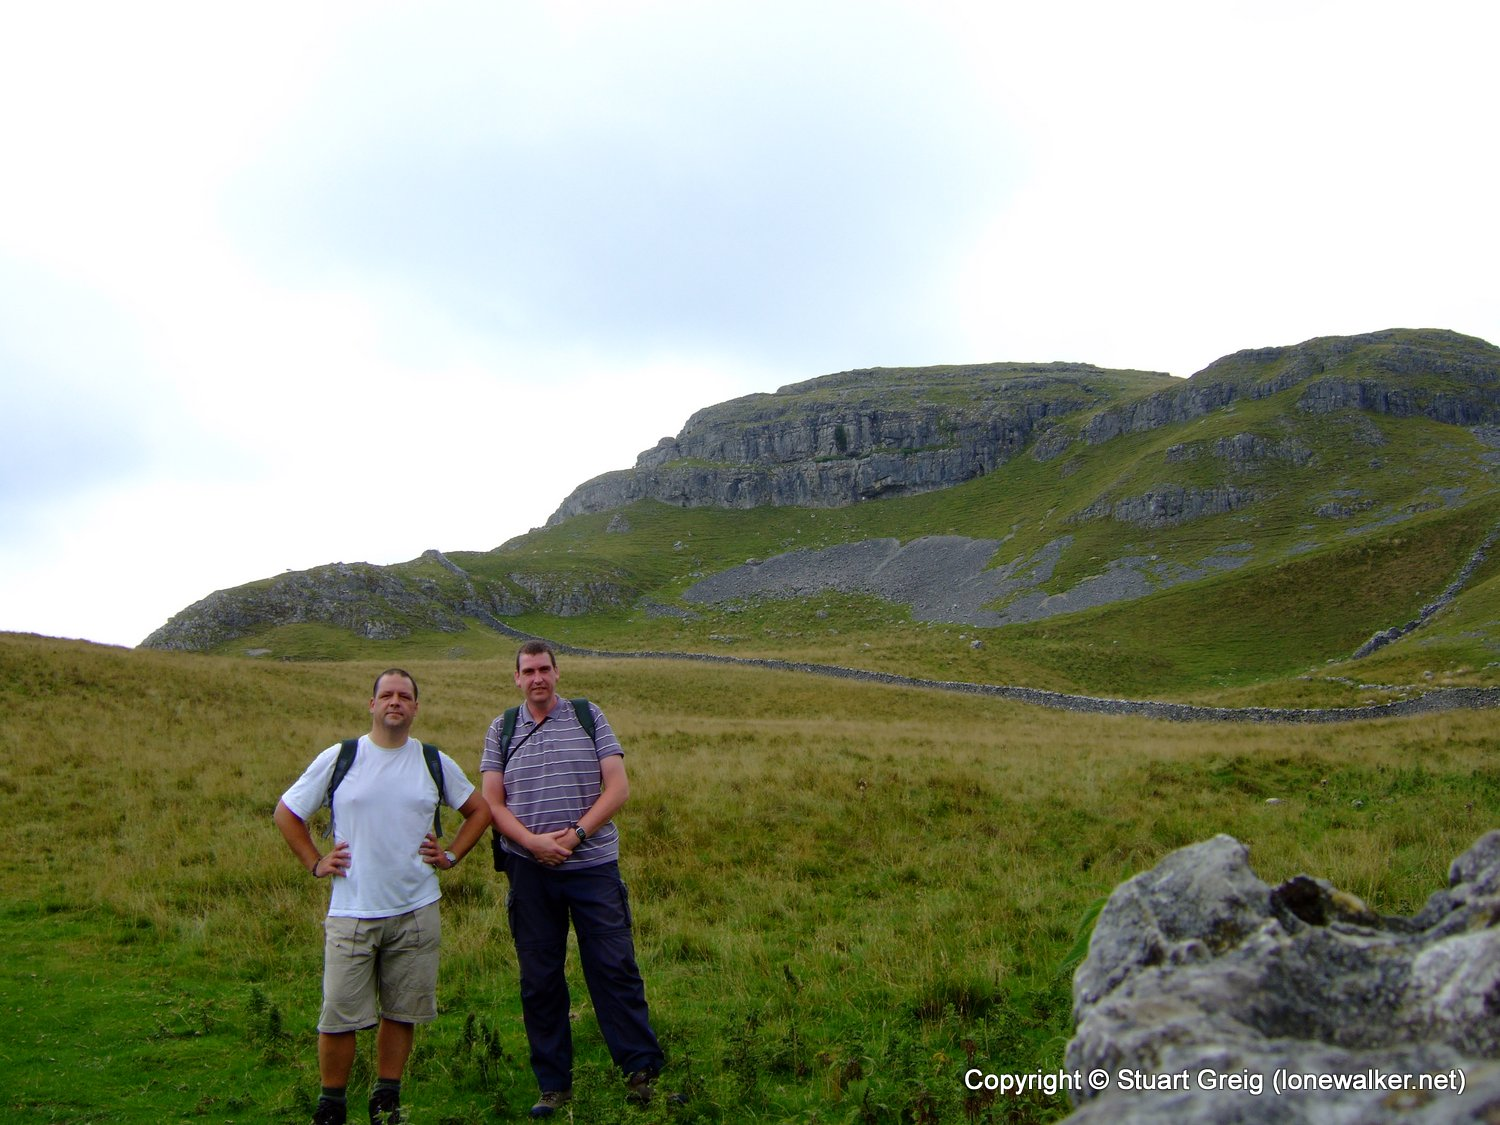 Stu and Mike in 3 Peaks Country